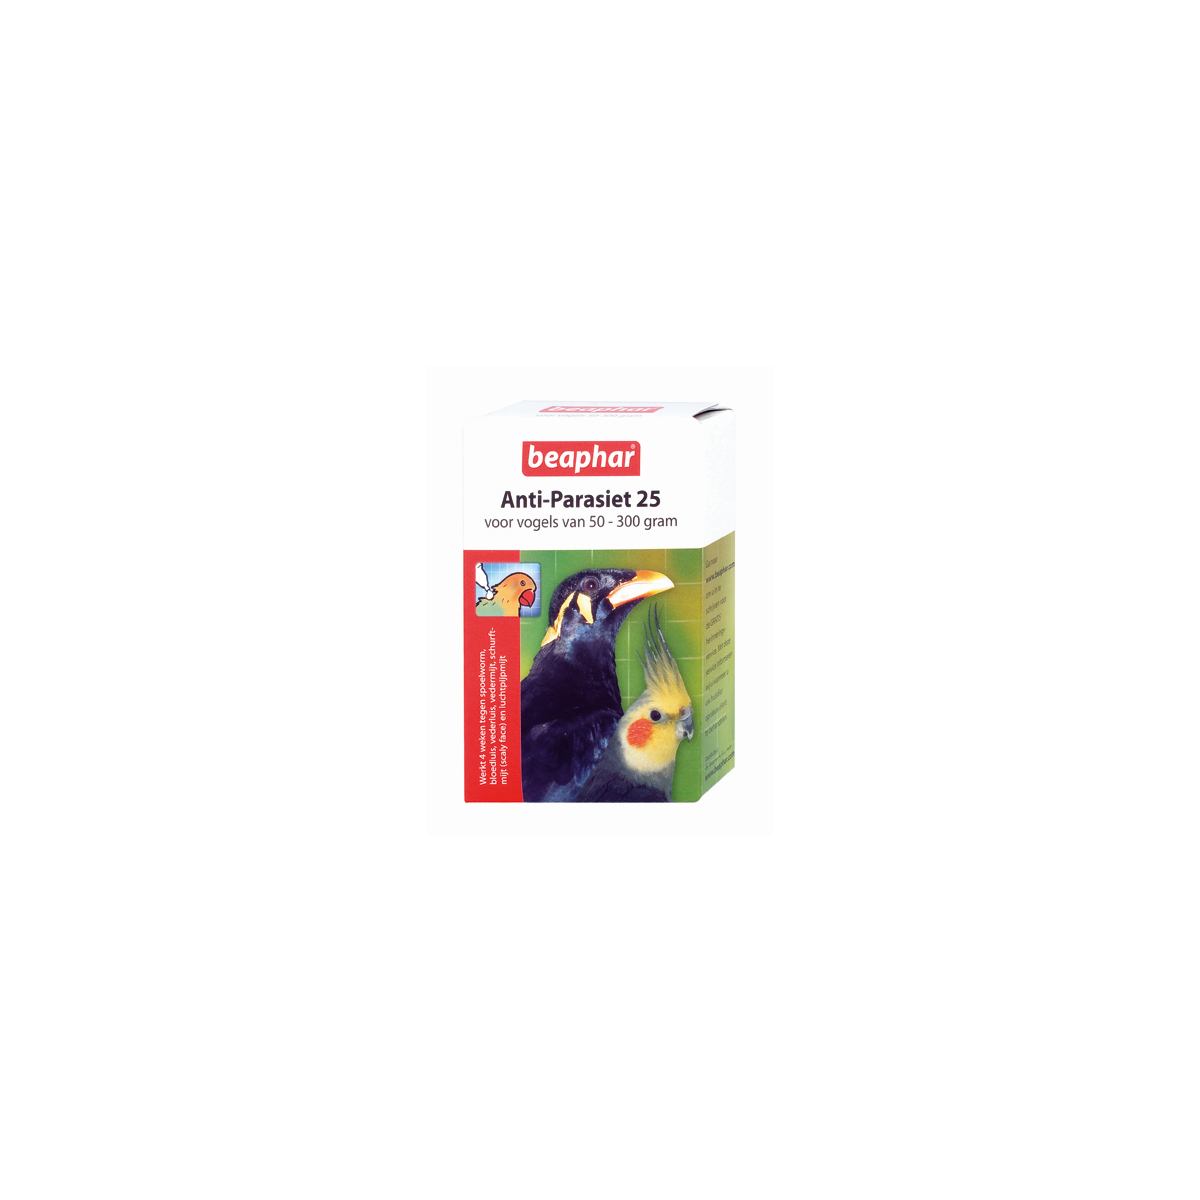 BEA ANTI-PARASIET 25 VOGEL 00002